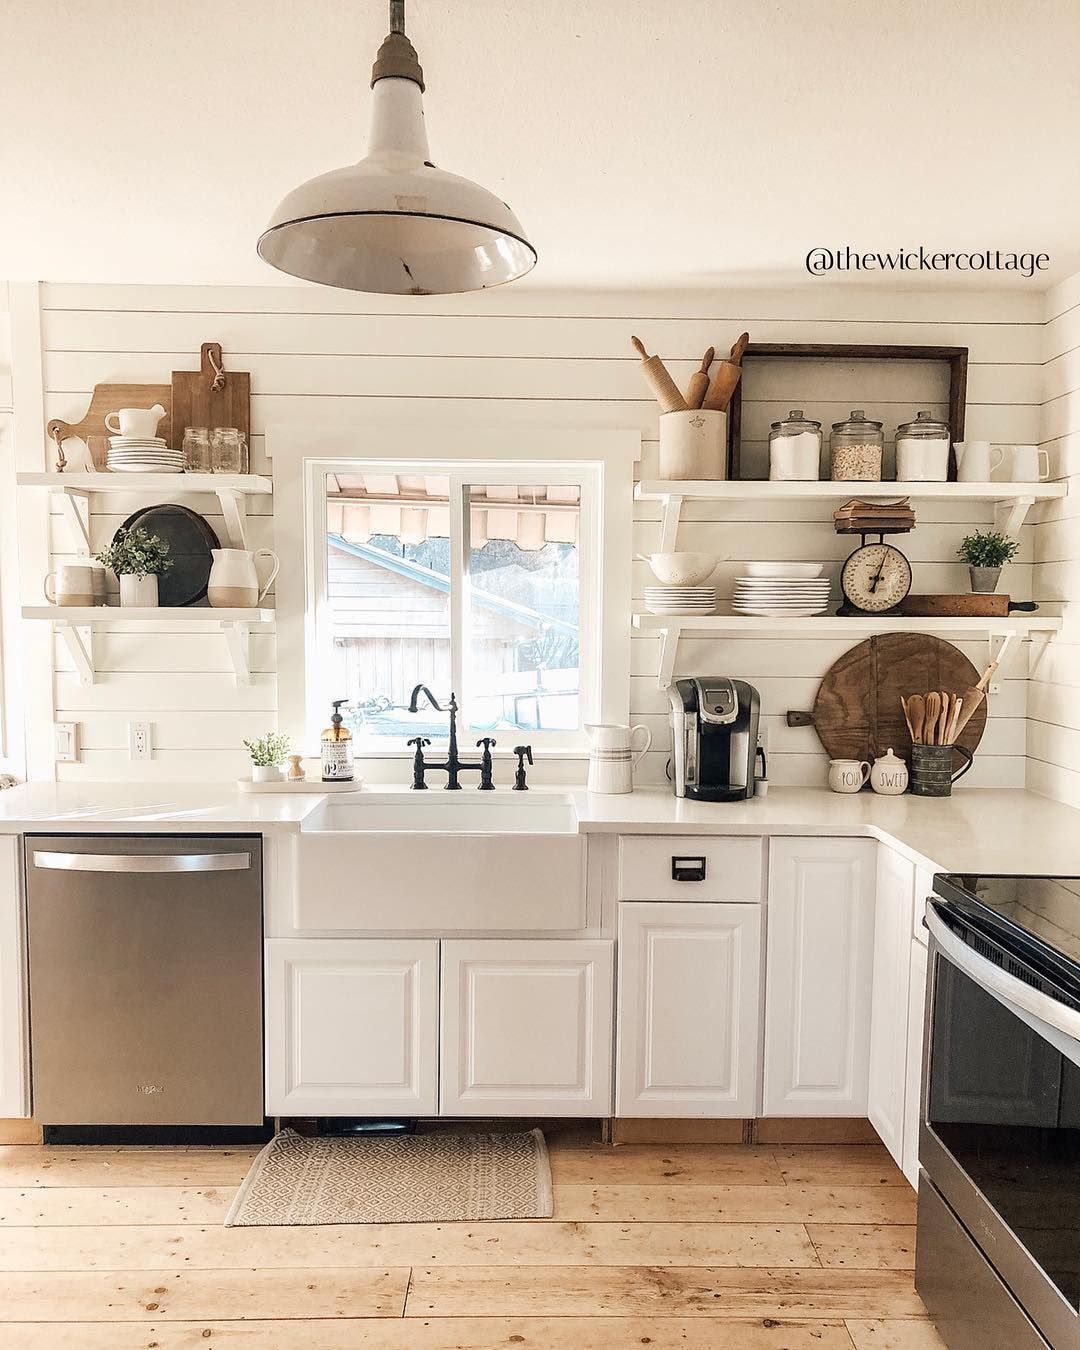 Farmhouse Fanatics On Instagram Who Doesn T Love A Whitekitchen Thewickercottage Helll Rustic Kitchen Rustic Kitchen Design Kitchen Trends